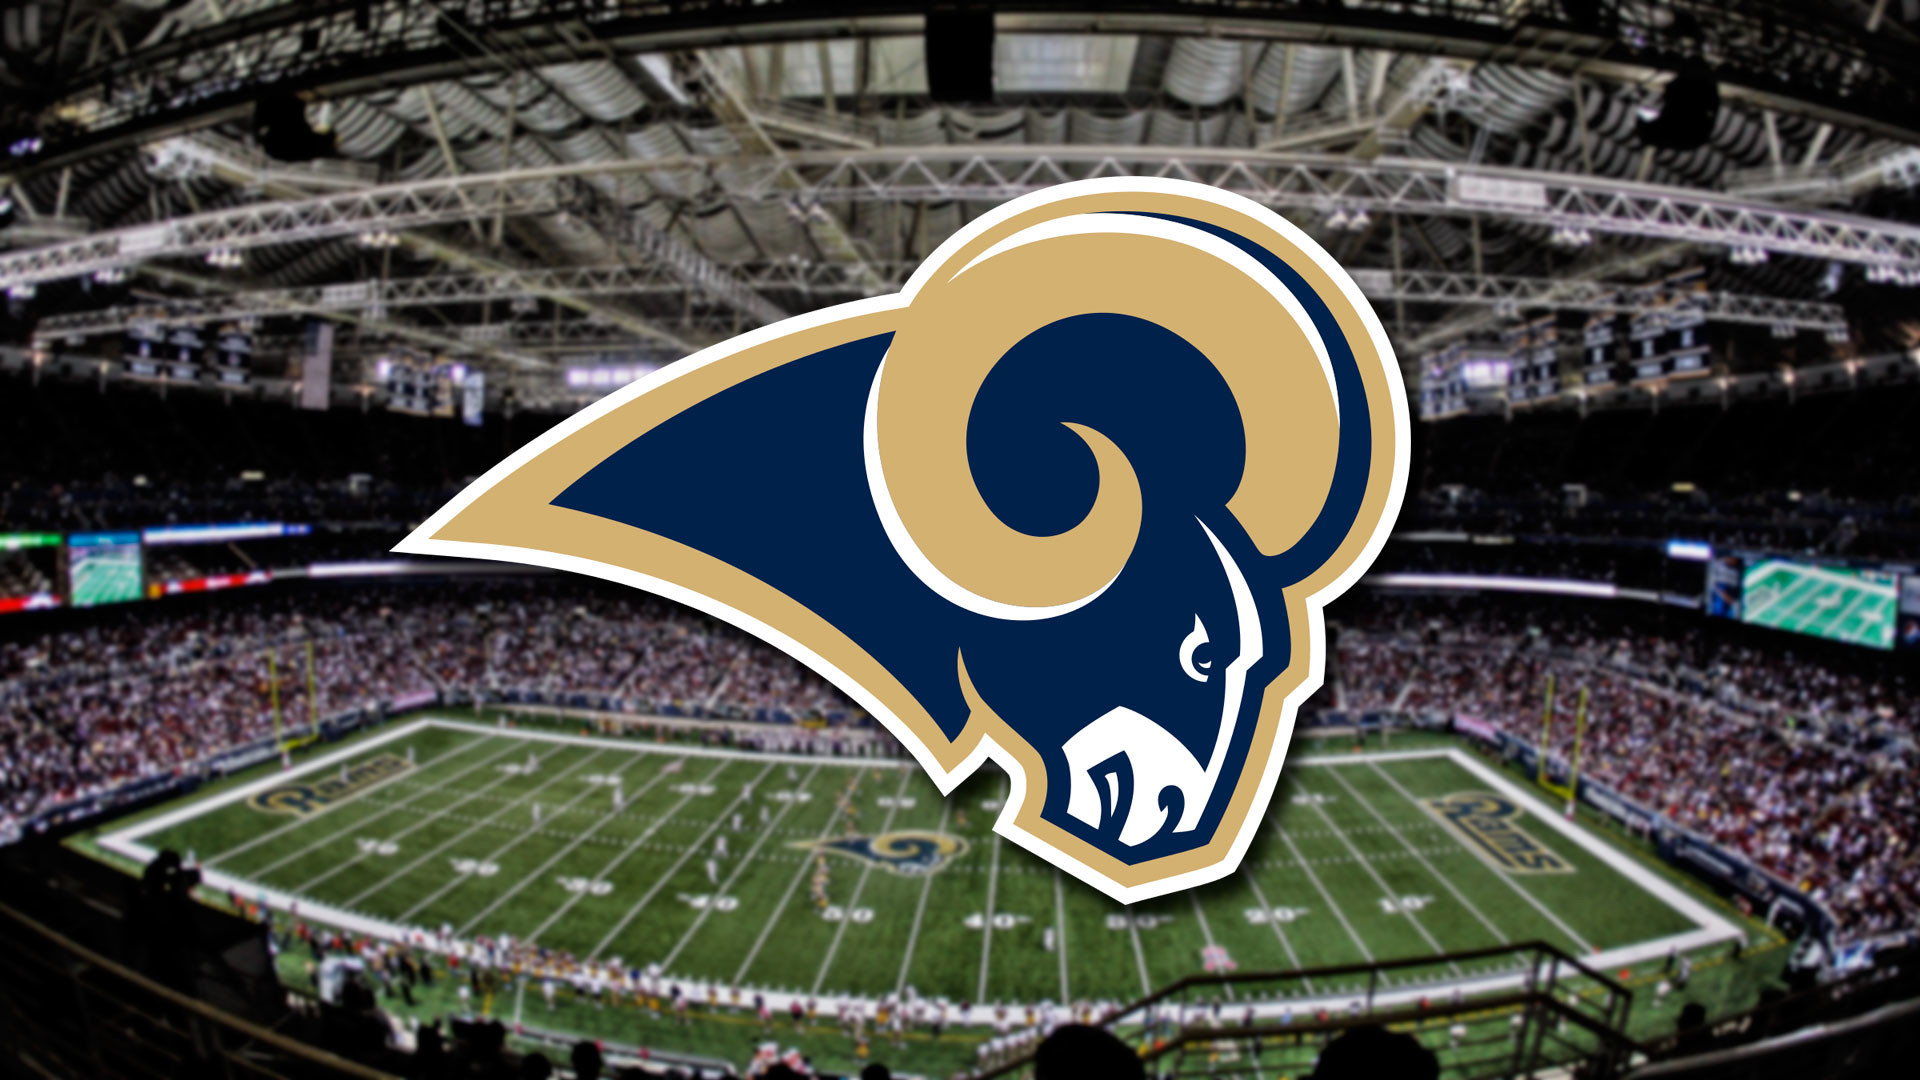 1920x1080 NFL must get on with it and finalize Rams' move to L.A. | NFL | Sporting  News